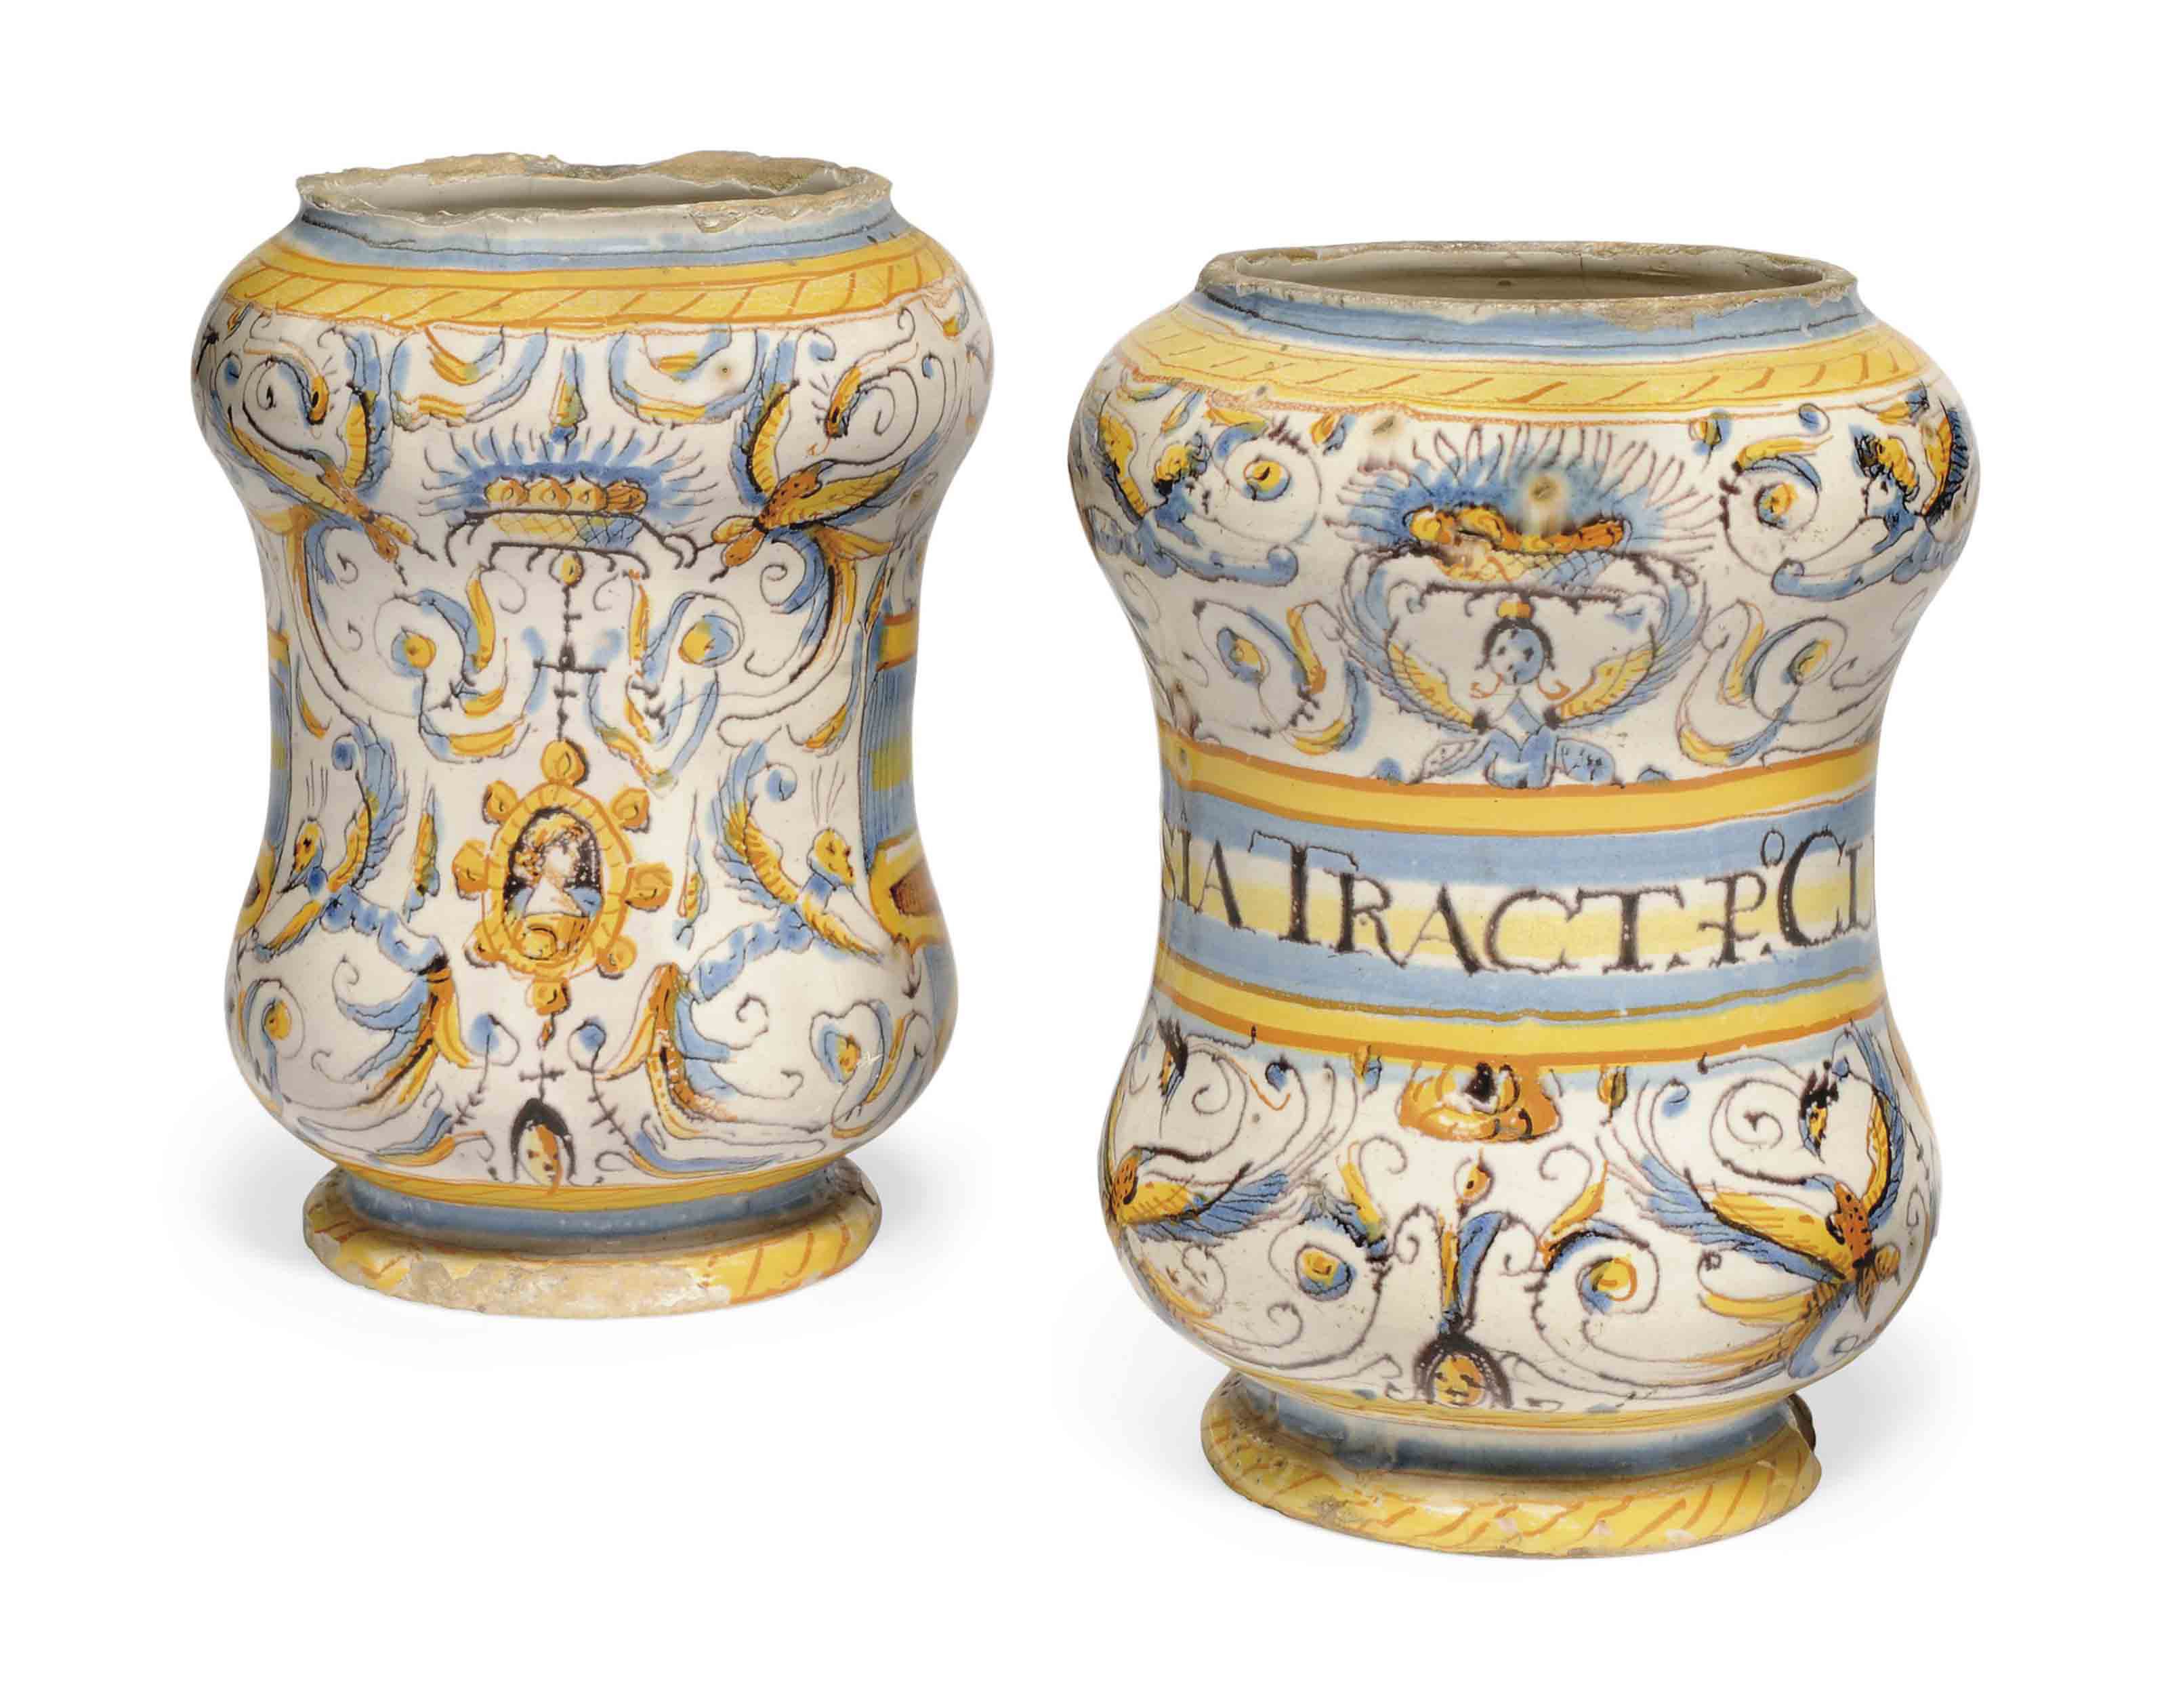 A PAIR OF ITALIAN MAIOLICA ALB